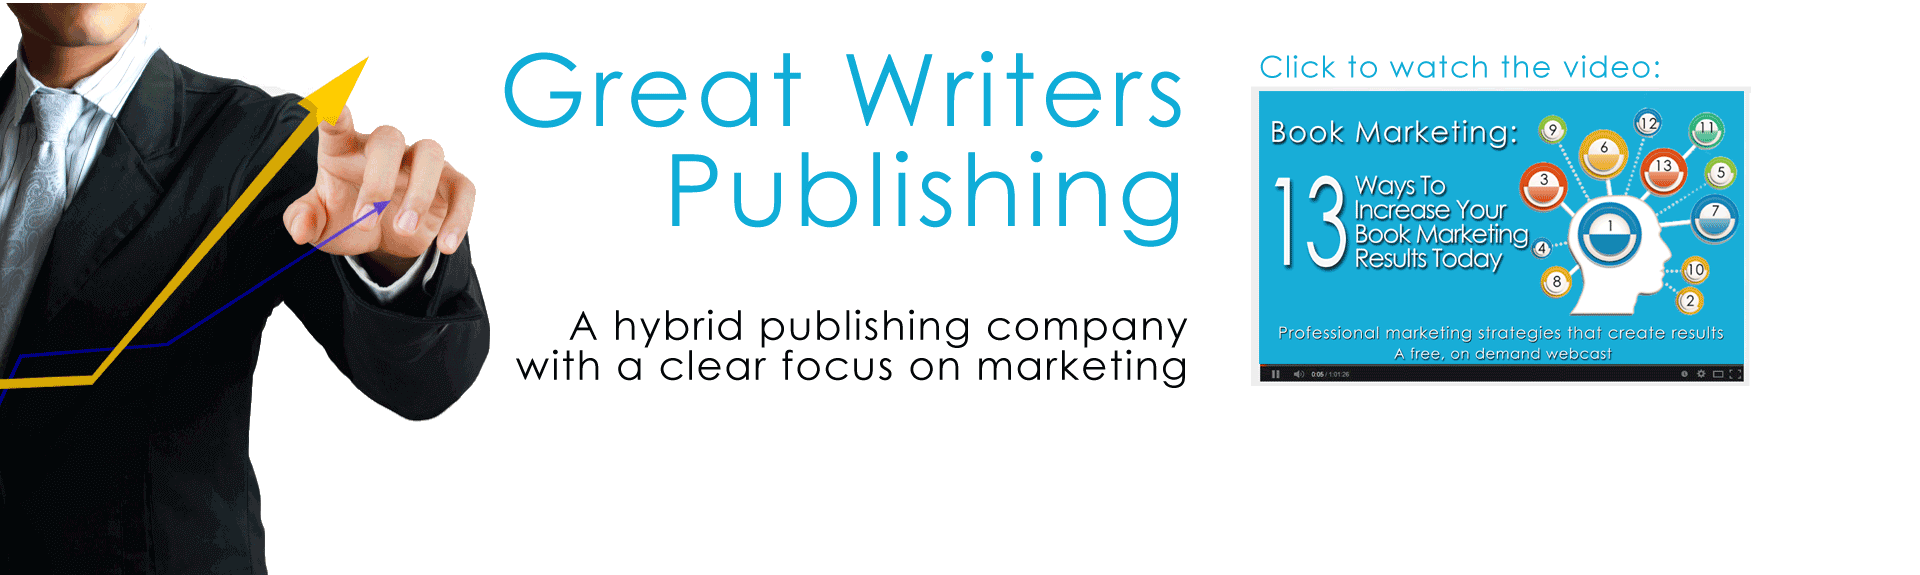 Great Writers Publishing 8